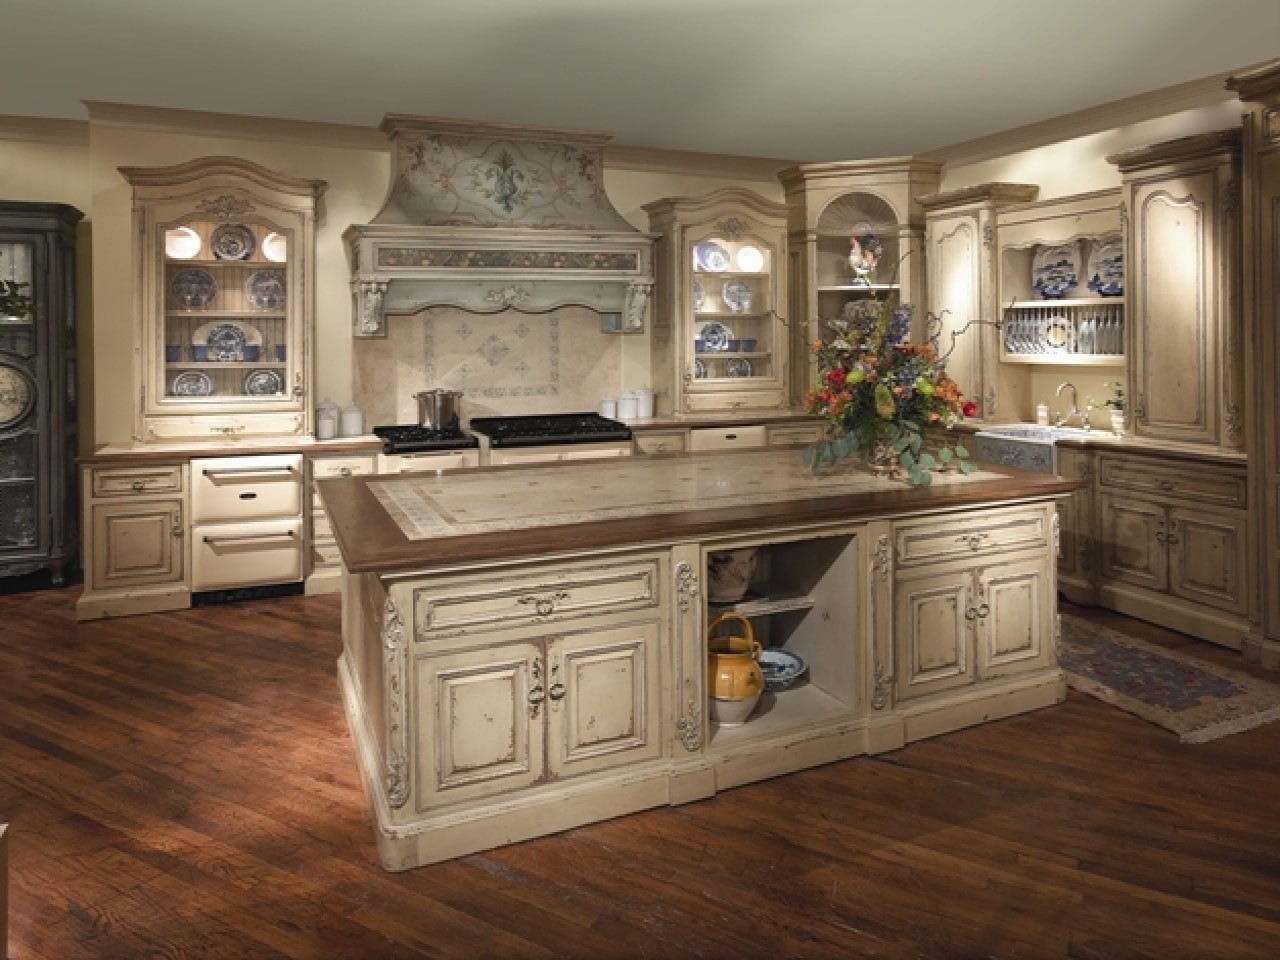 French country cabinets 1 & French Country Cabinets - Foter